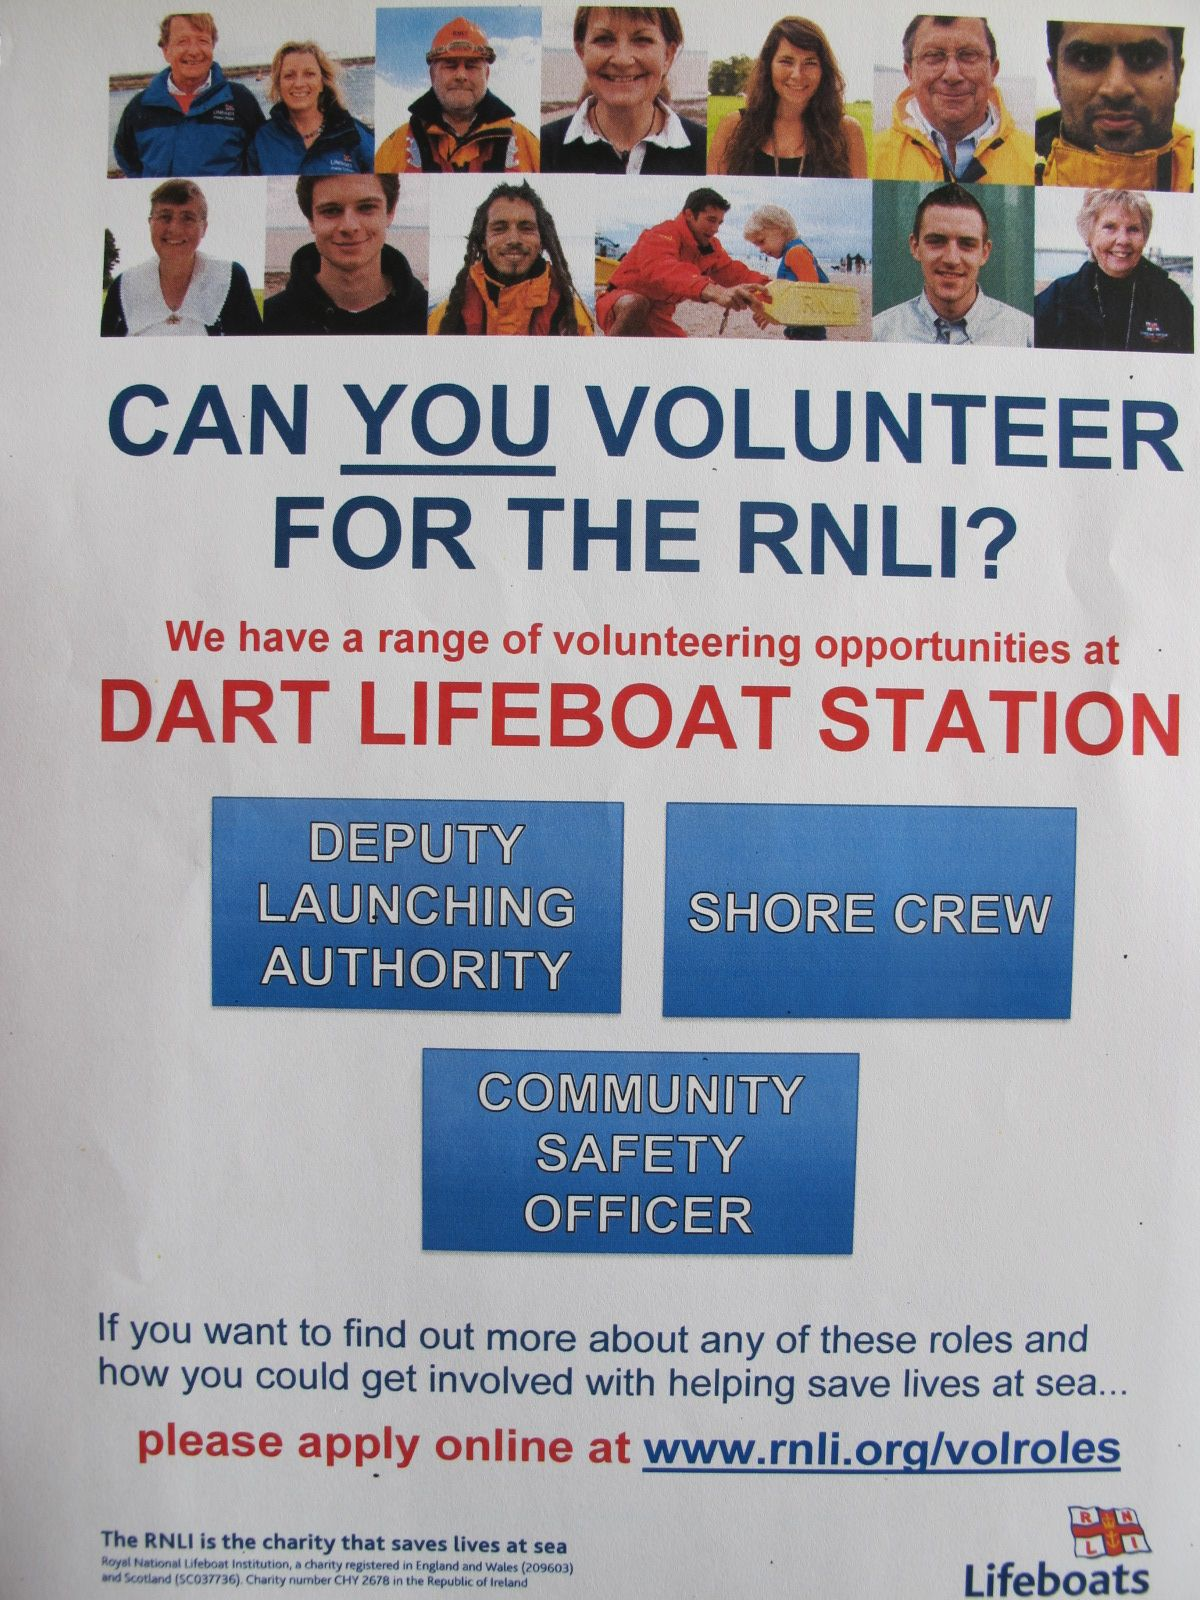 Dart RNLI volunteering opportunities